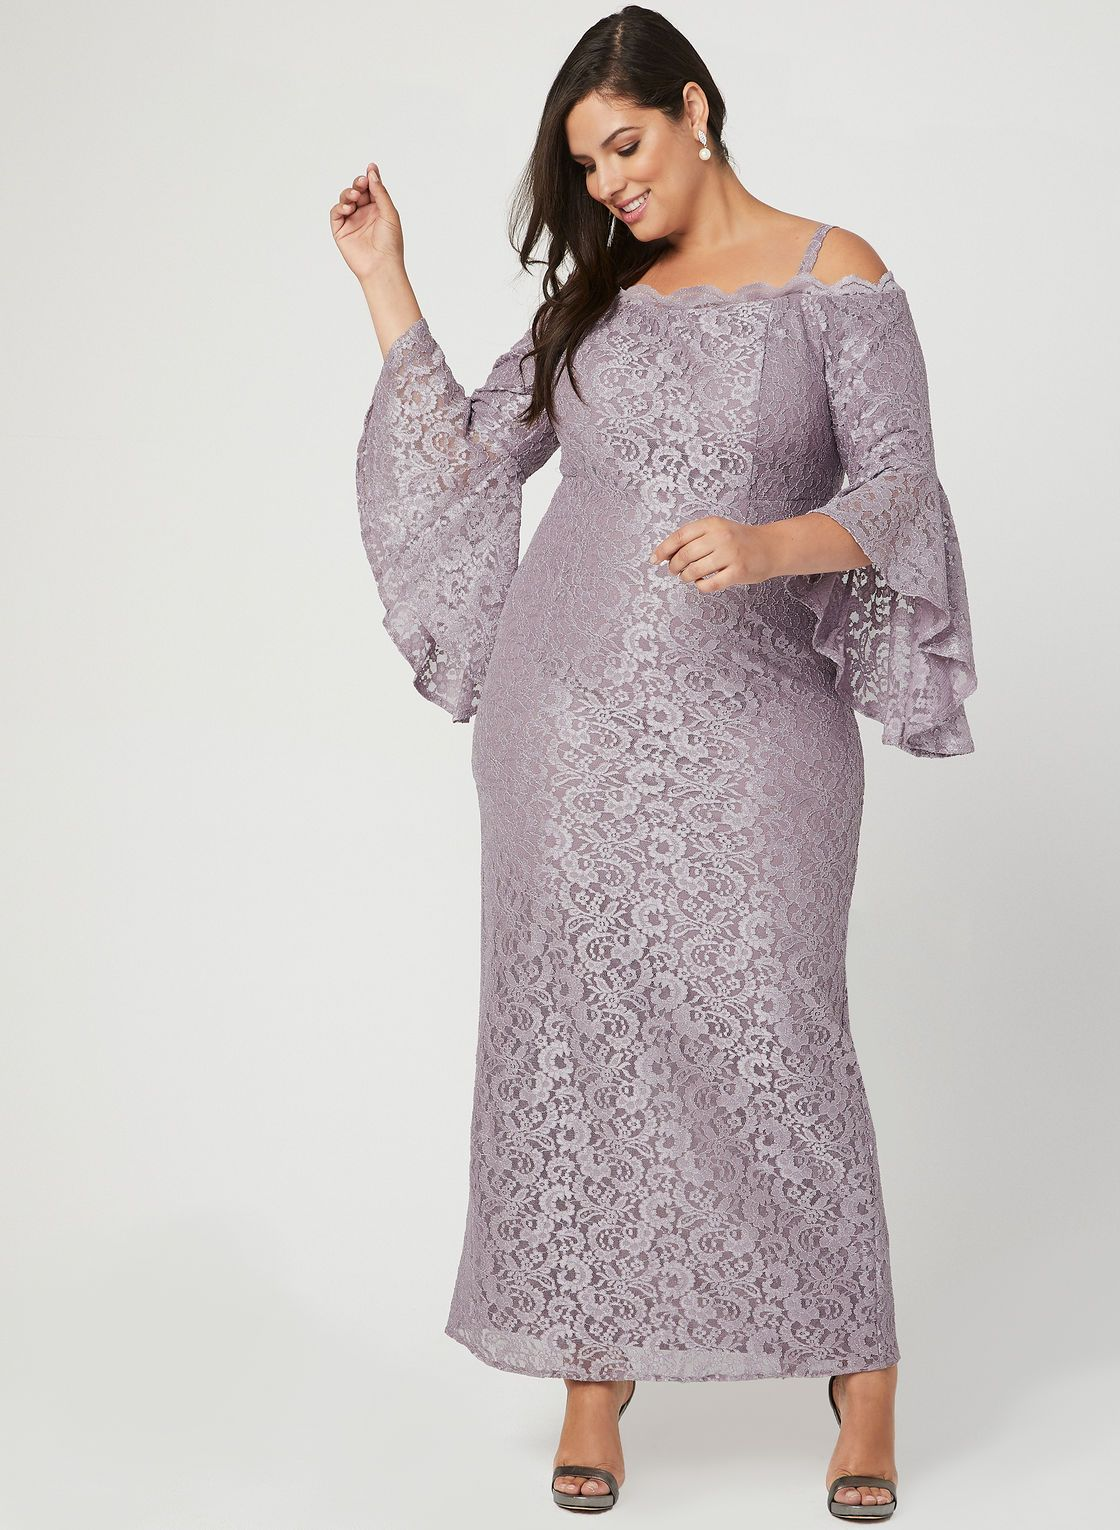 ec3dd00589b4 Glitter Lace Off The Shoulder Dress